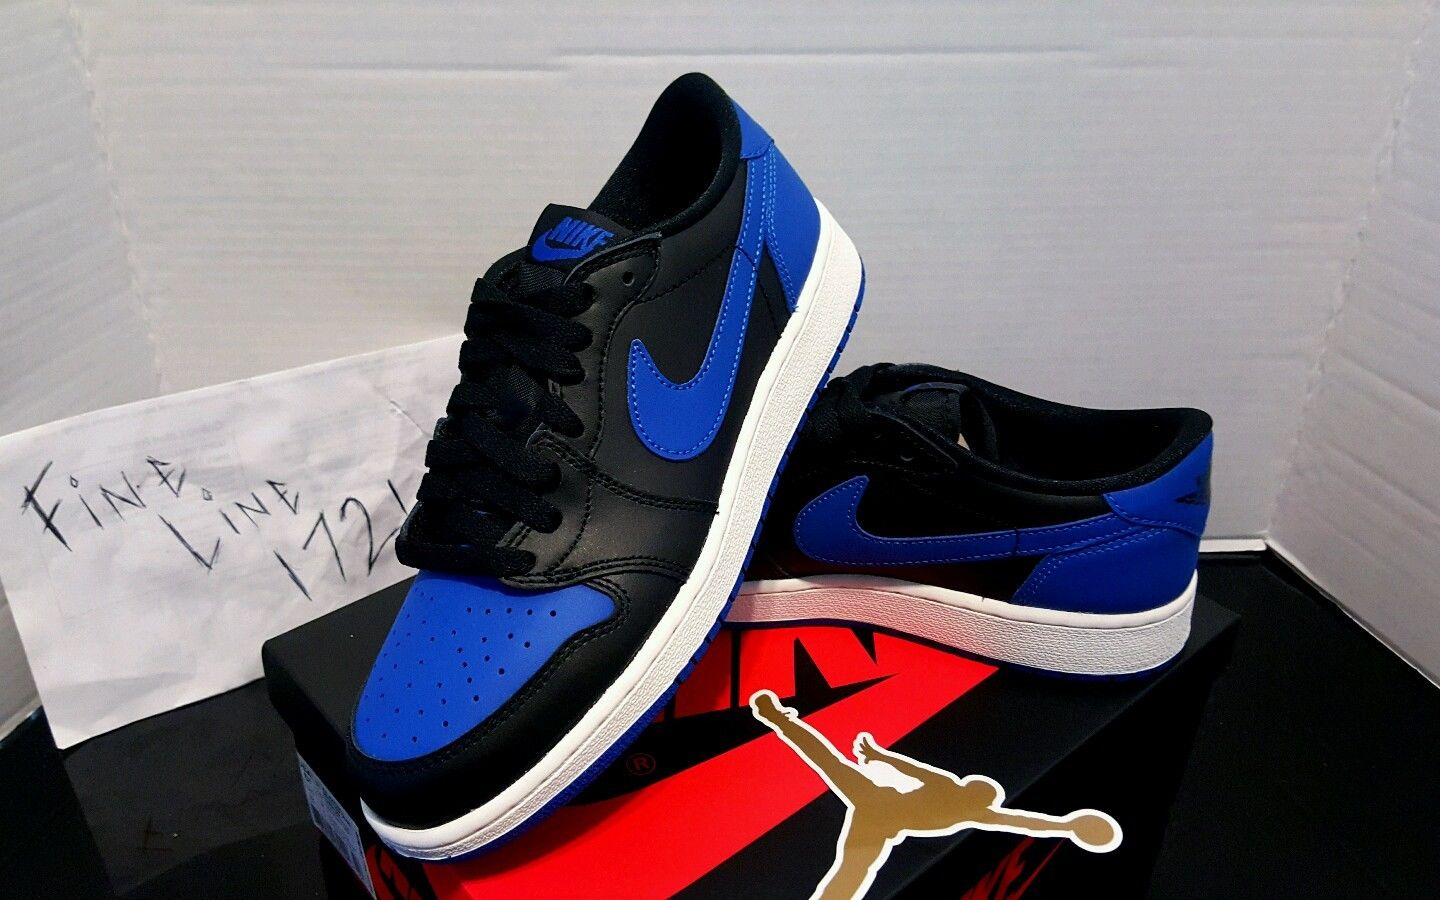 timeless design 1d97d e50ce The  Royal  Air Jordan 1 Low Is Keeping a Low Profile   Sole Collector